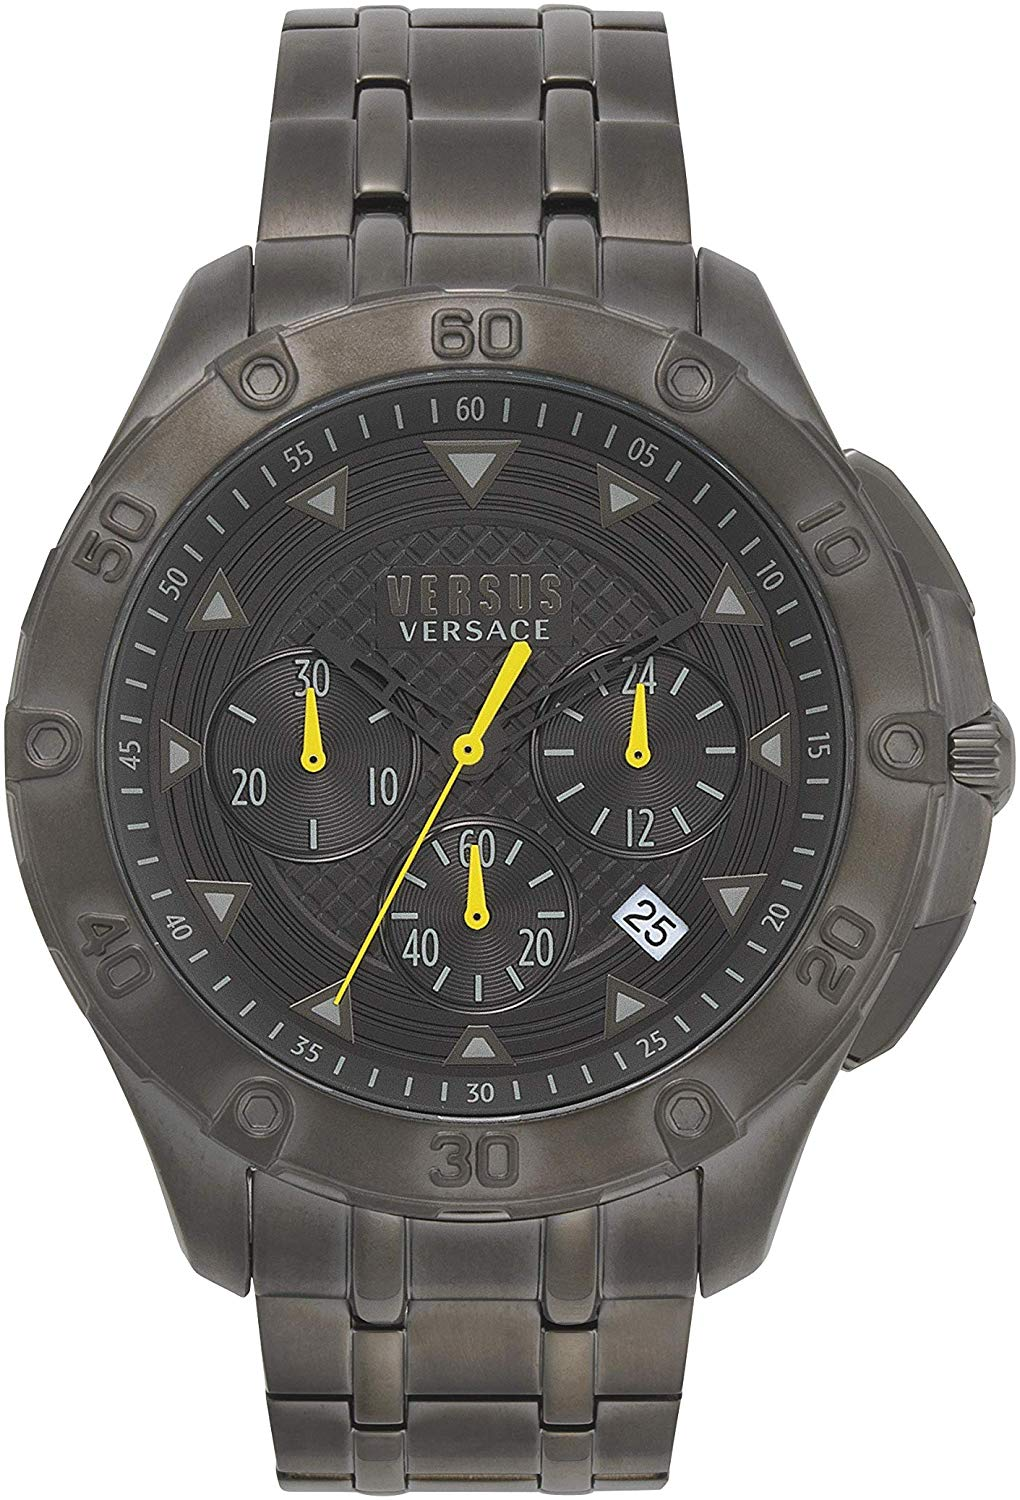 Versus Versace Simons Town Chronograph Steel - Watches & Crystals